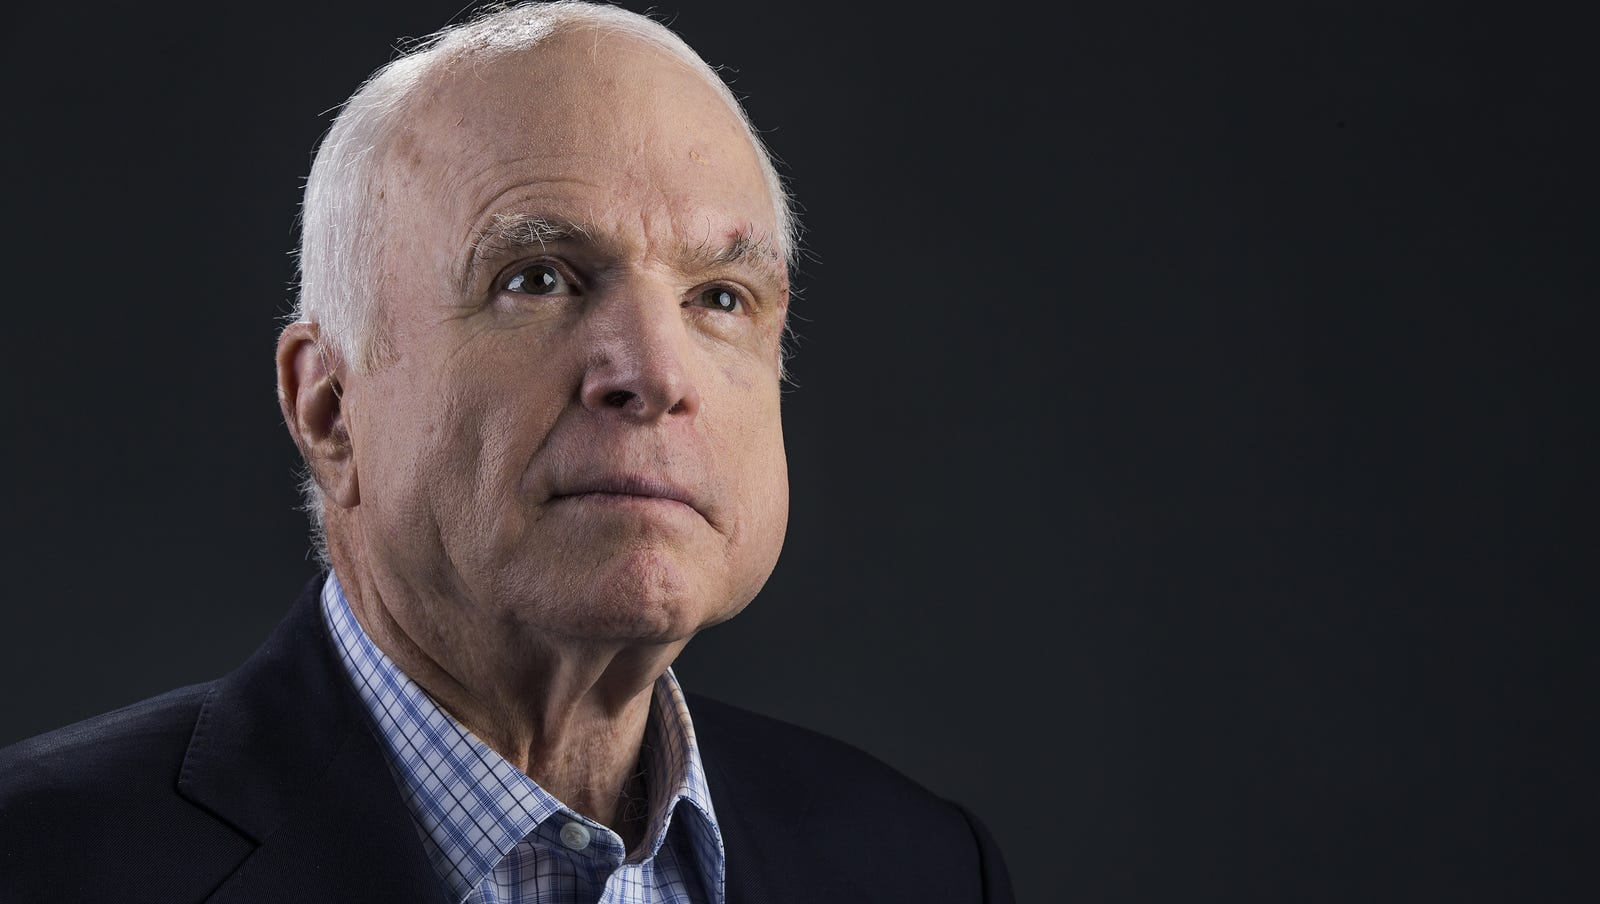 John Mccain Arizona Senator Dies At Age 81 From Brain Cancer